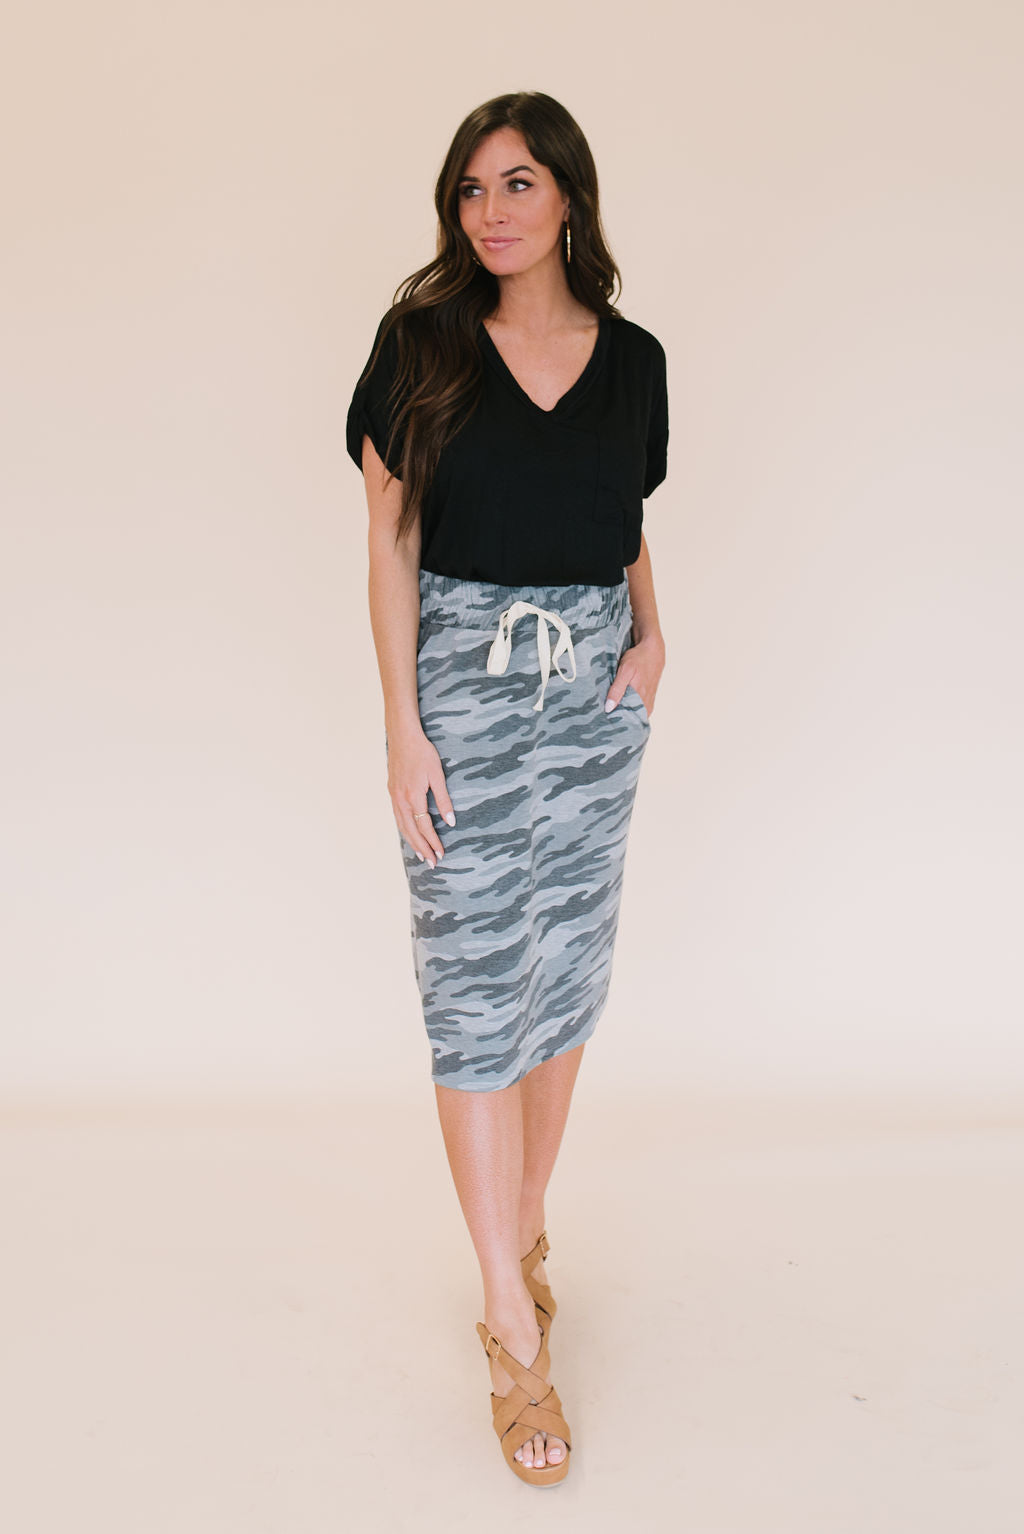 LIV DRAWSTRING SKIRT IN GREY CAMO